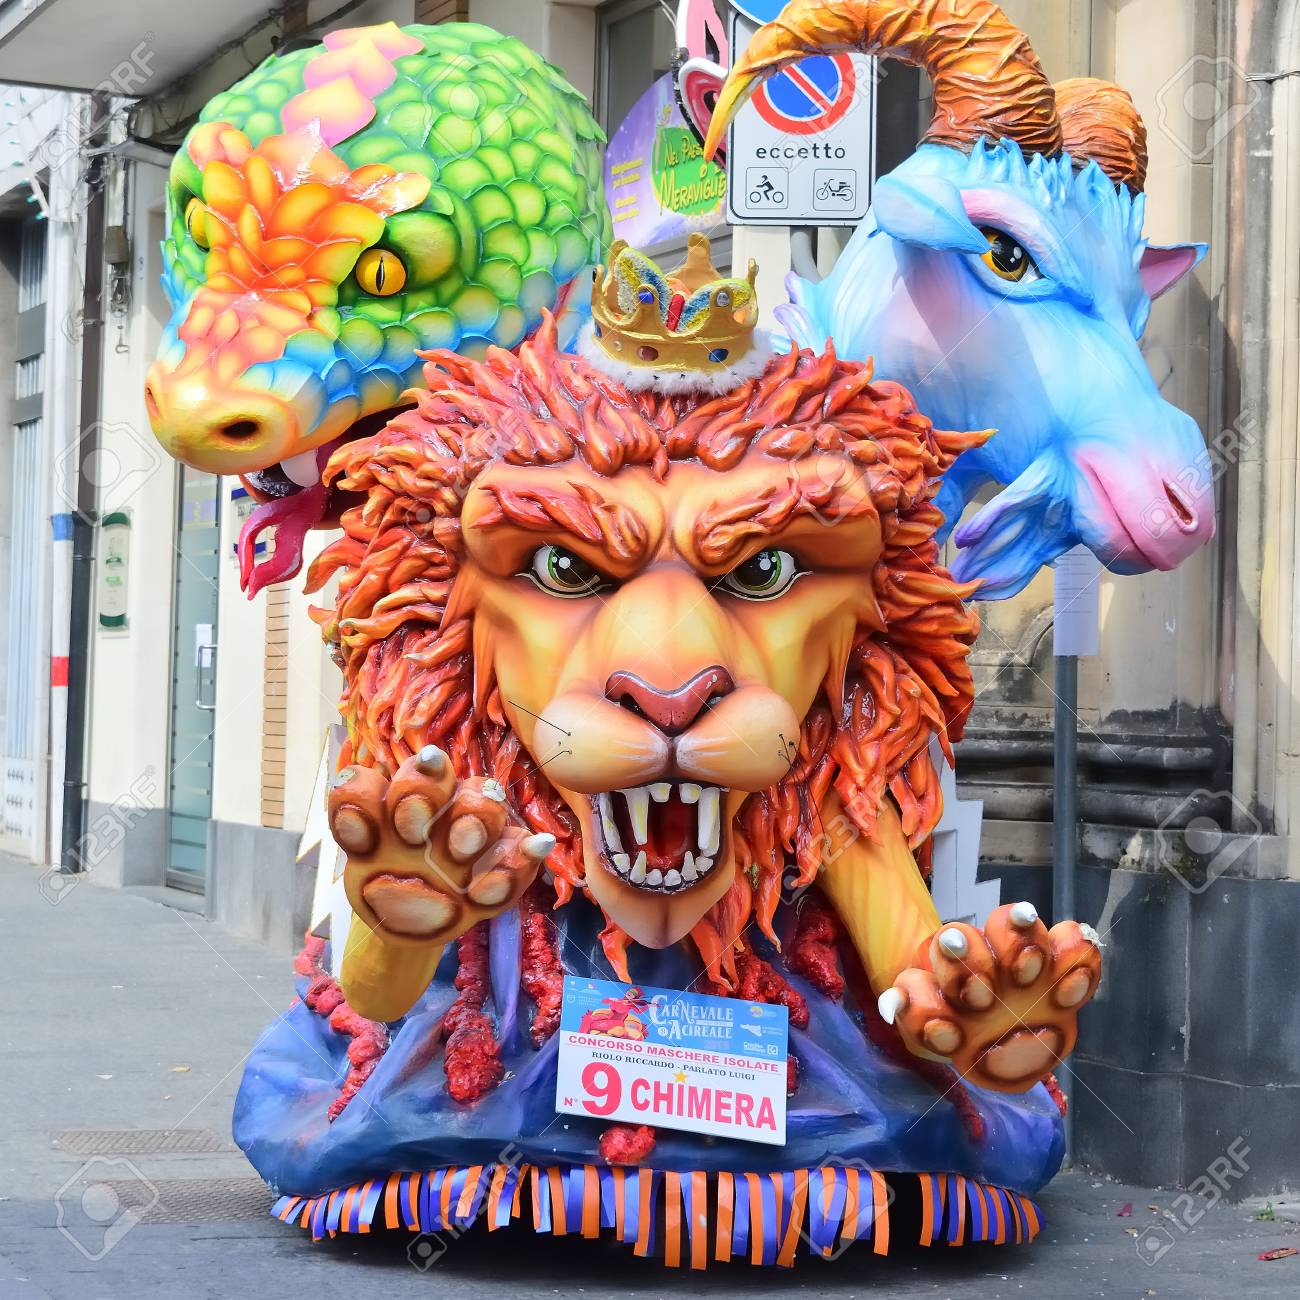 Acireale (CT), Italy - April 29, 2018: detail of a allegorical float depicting various fantasy characters during the carnival parade along the streets of Acireale. - 105184326